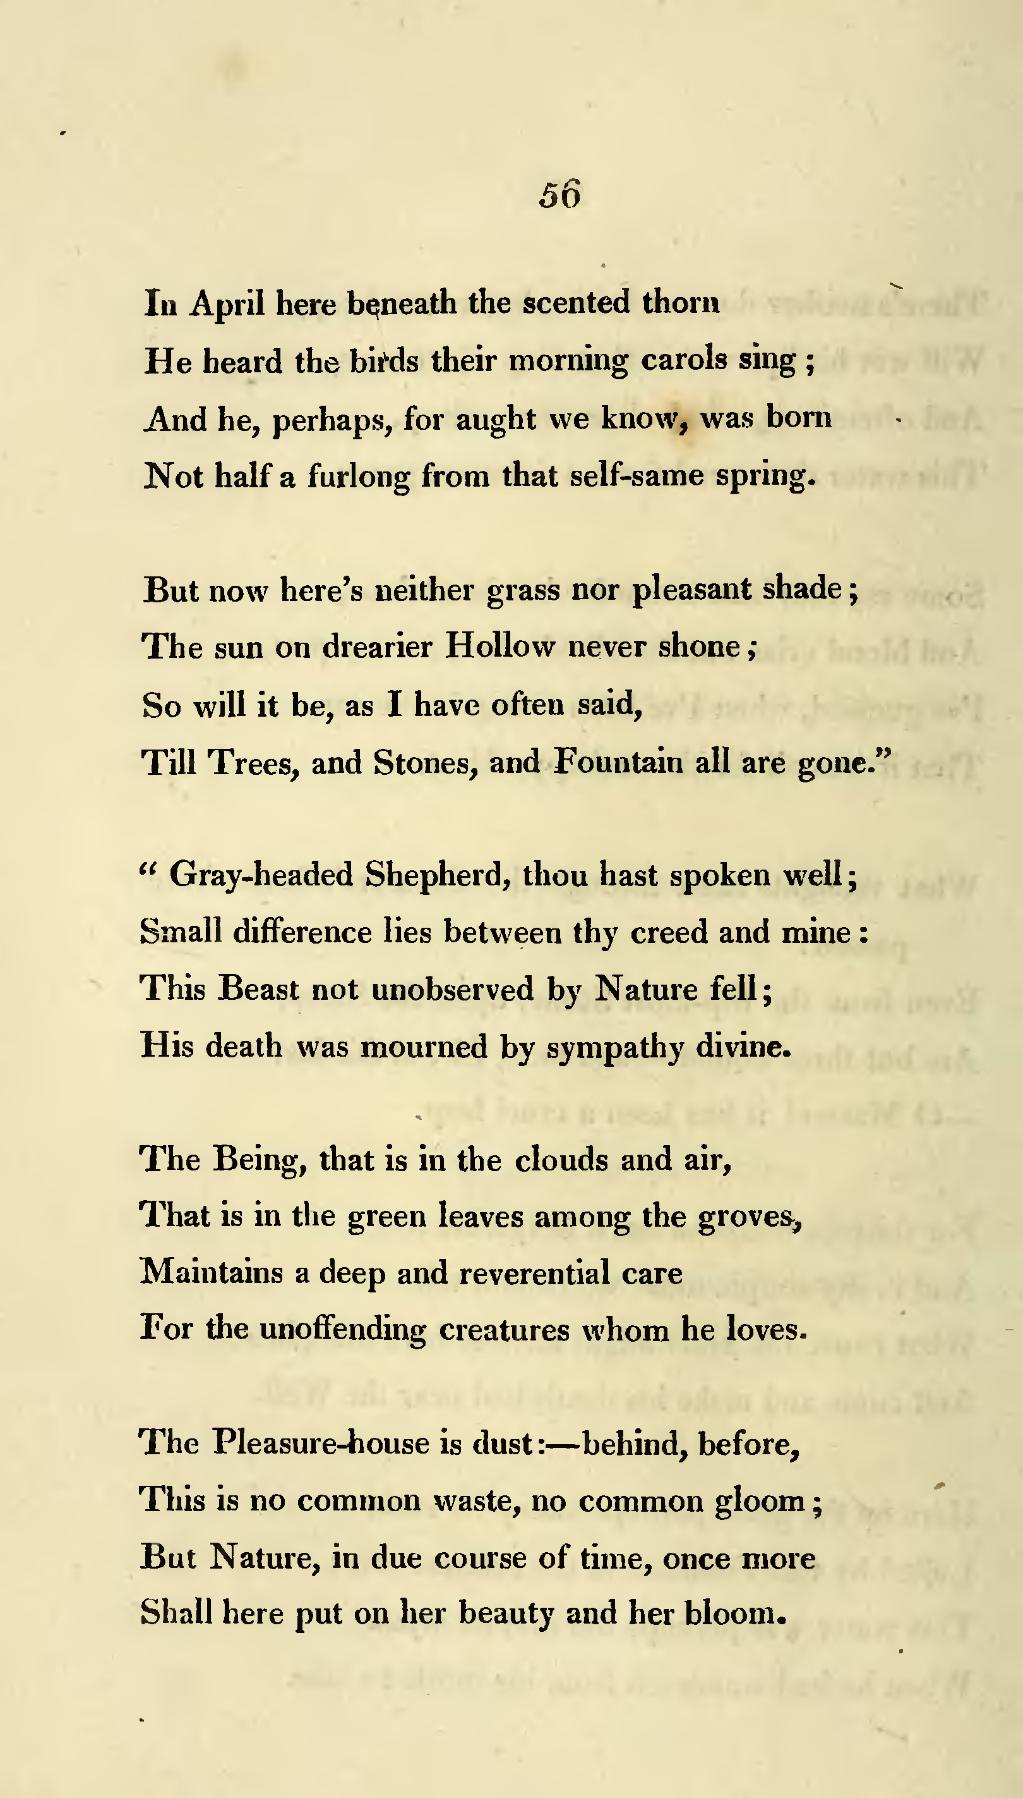 wordsworth on death